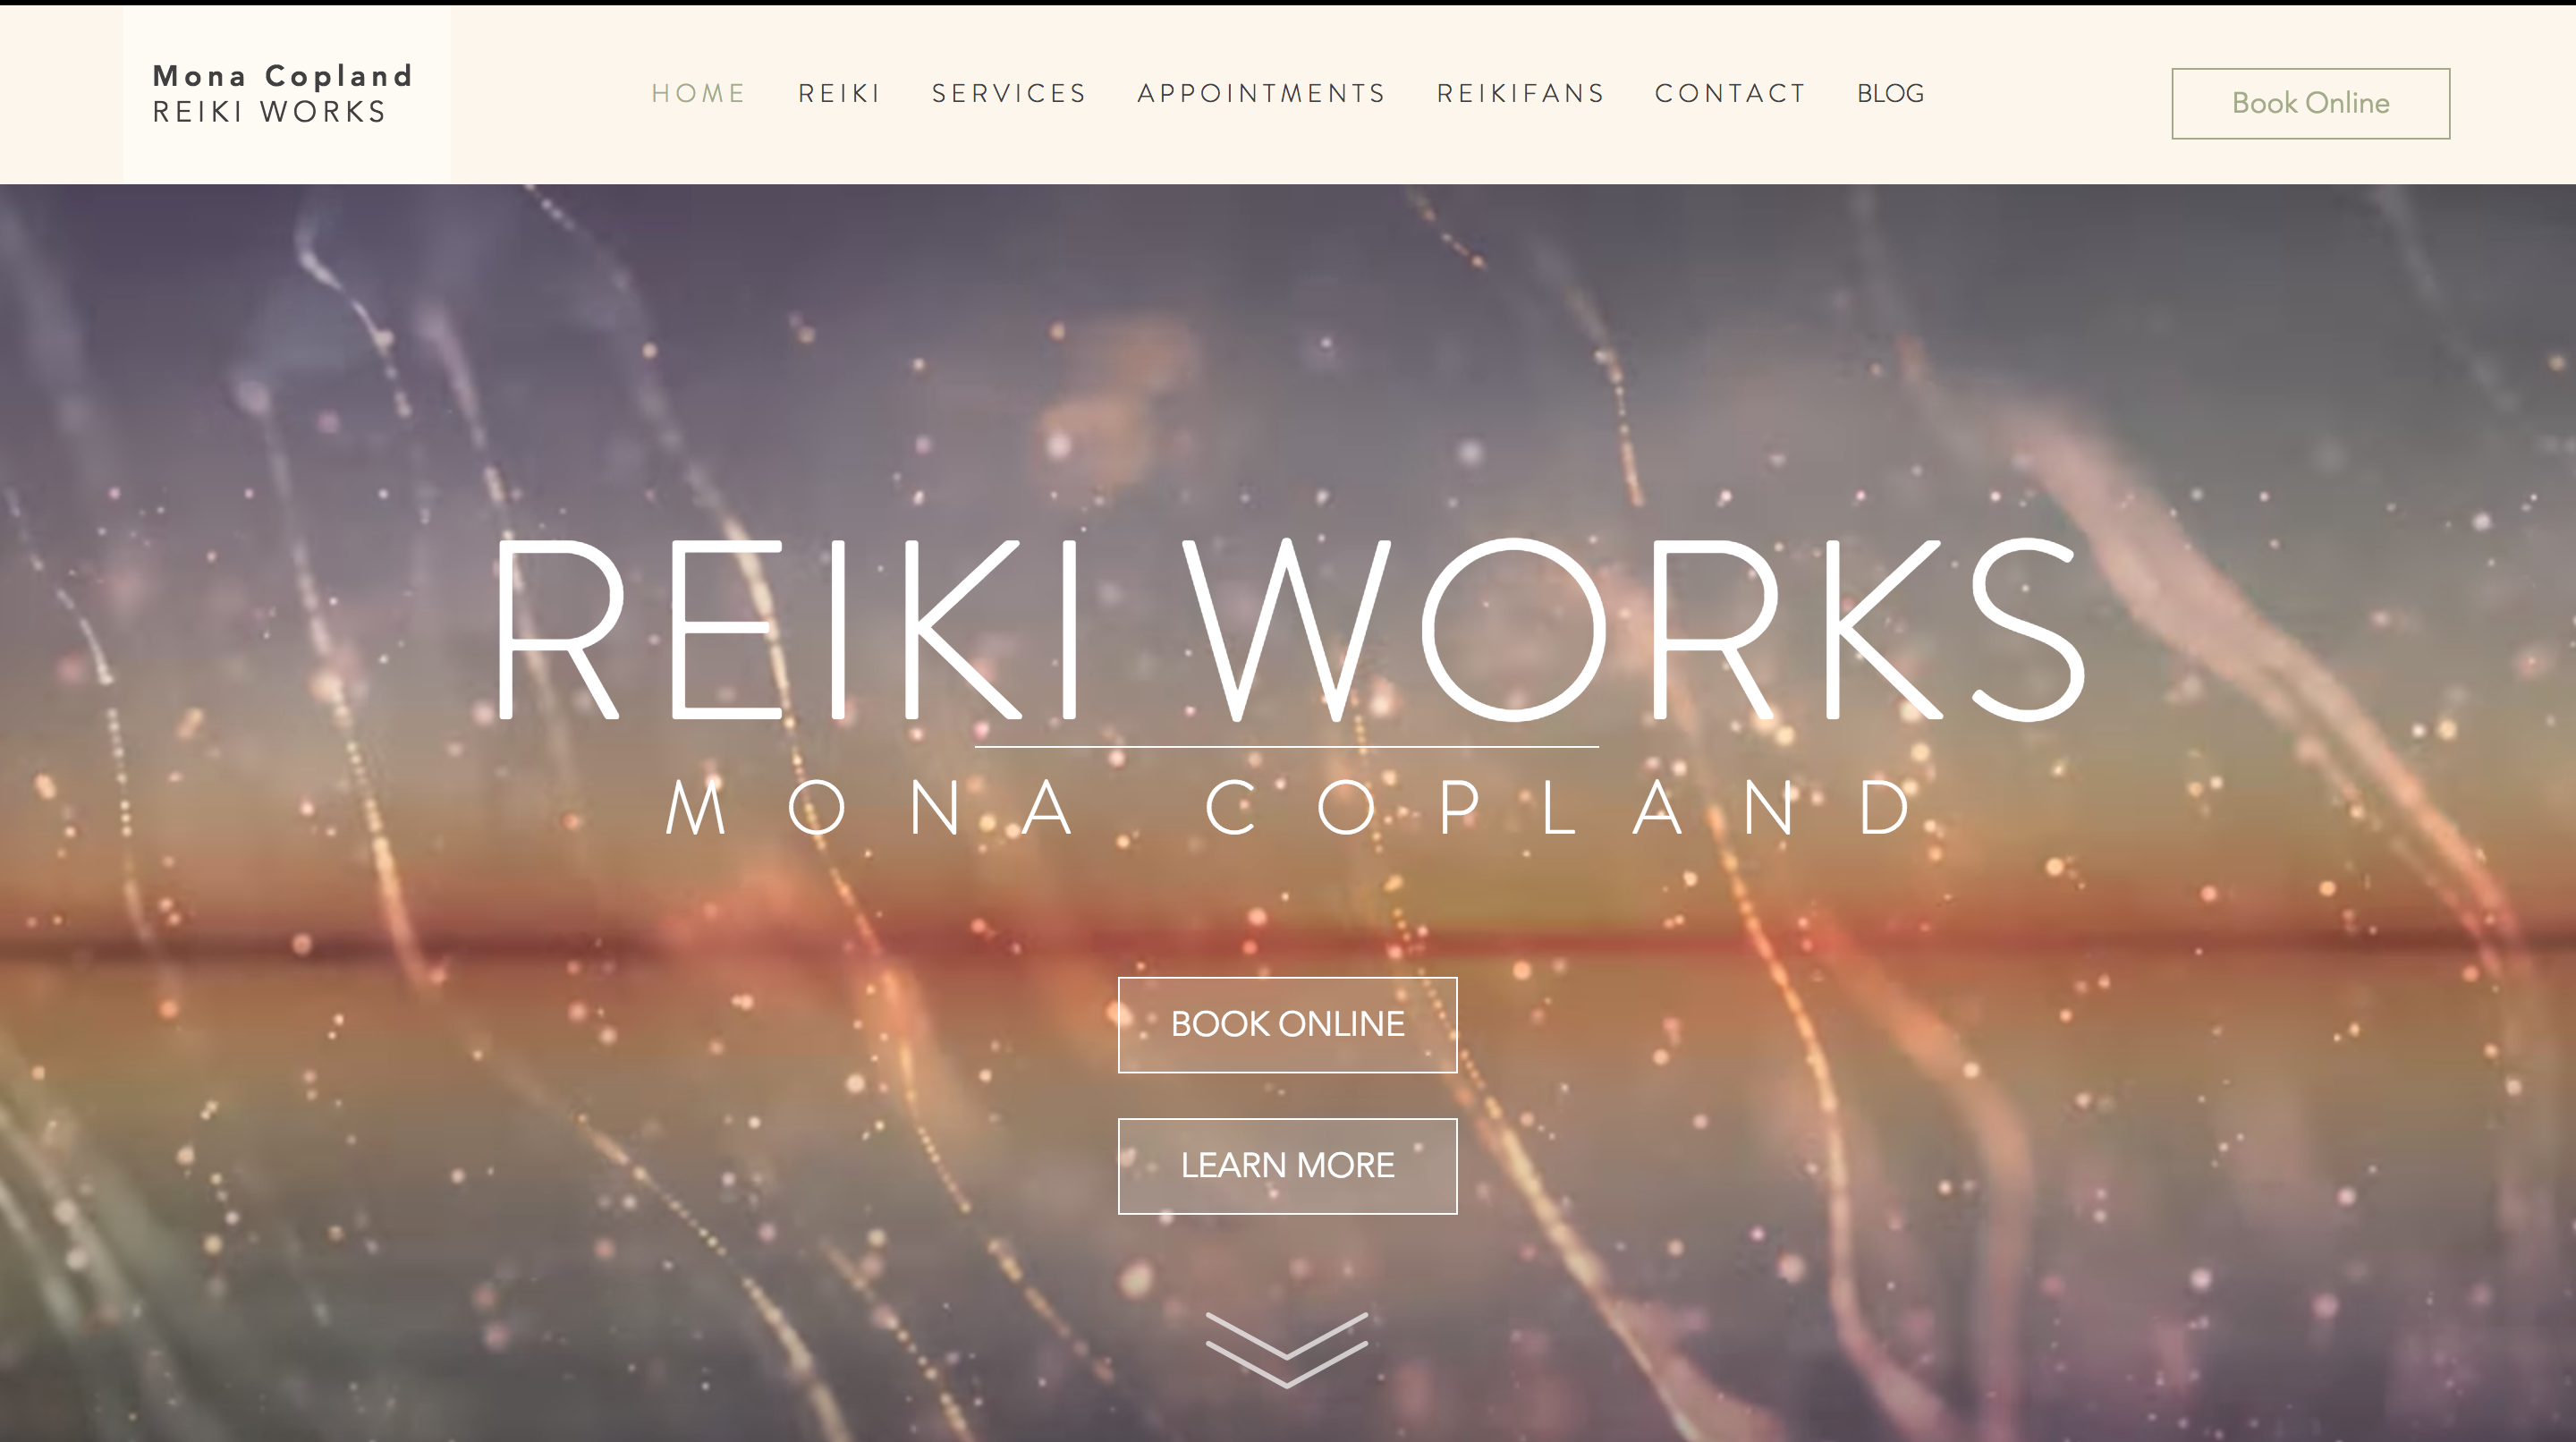 Reiki Works Website